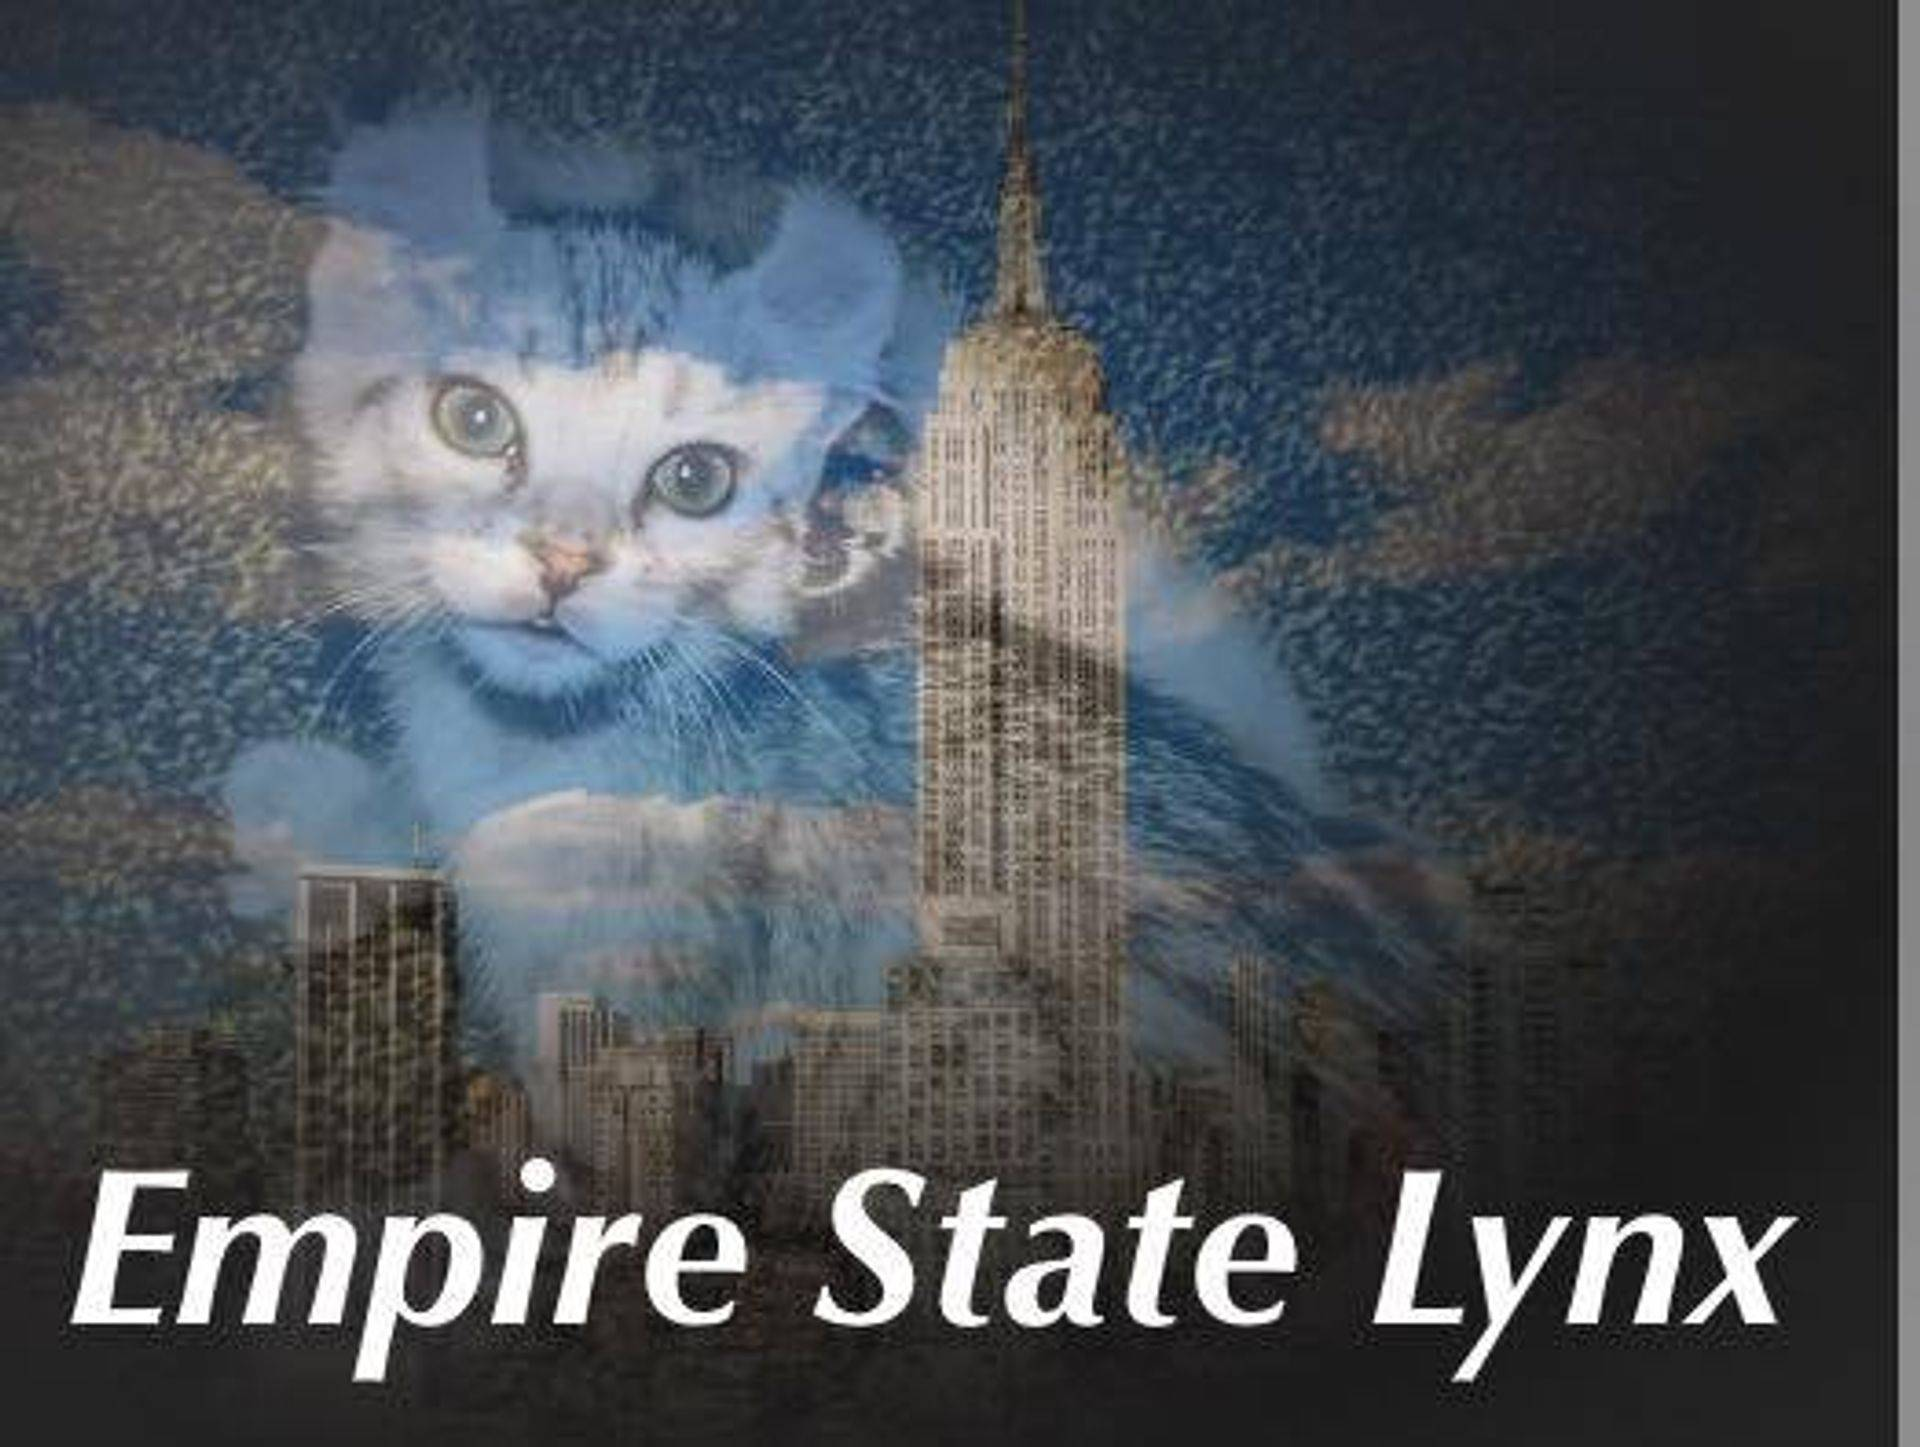 Empire State Lynx Cattery